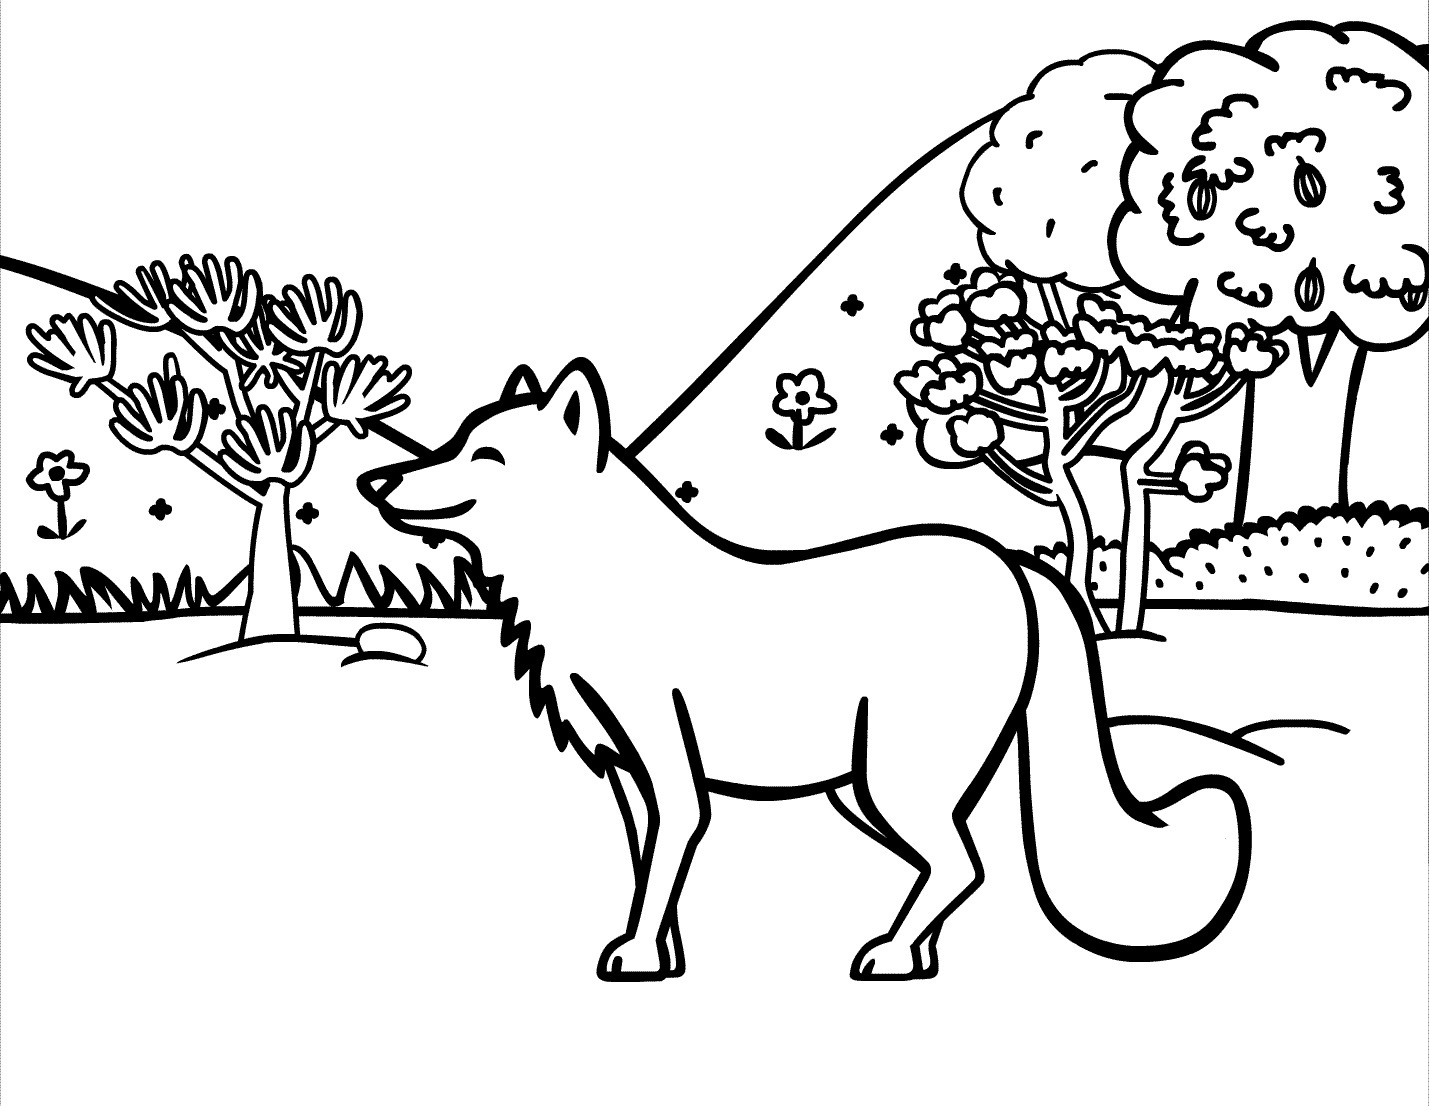 Red Fox in the forest coloring page | Free Printable Coloring Pages | 1106x1429